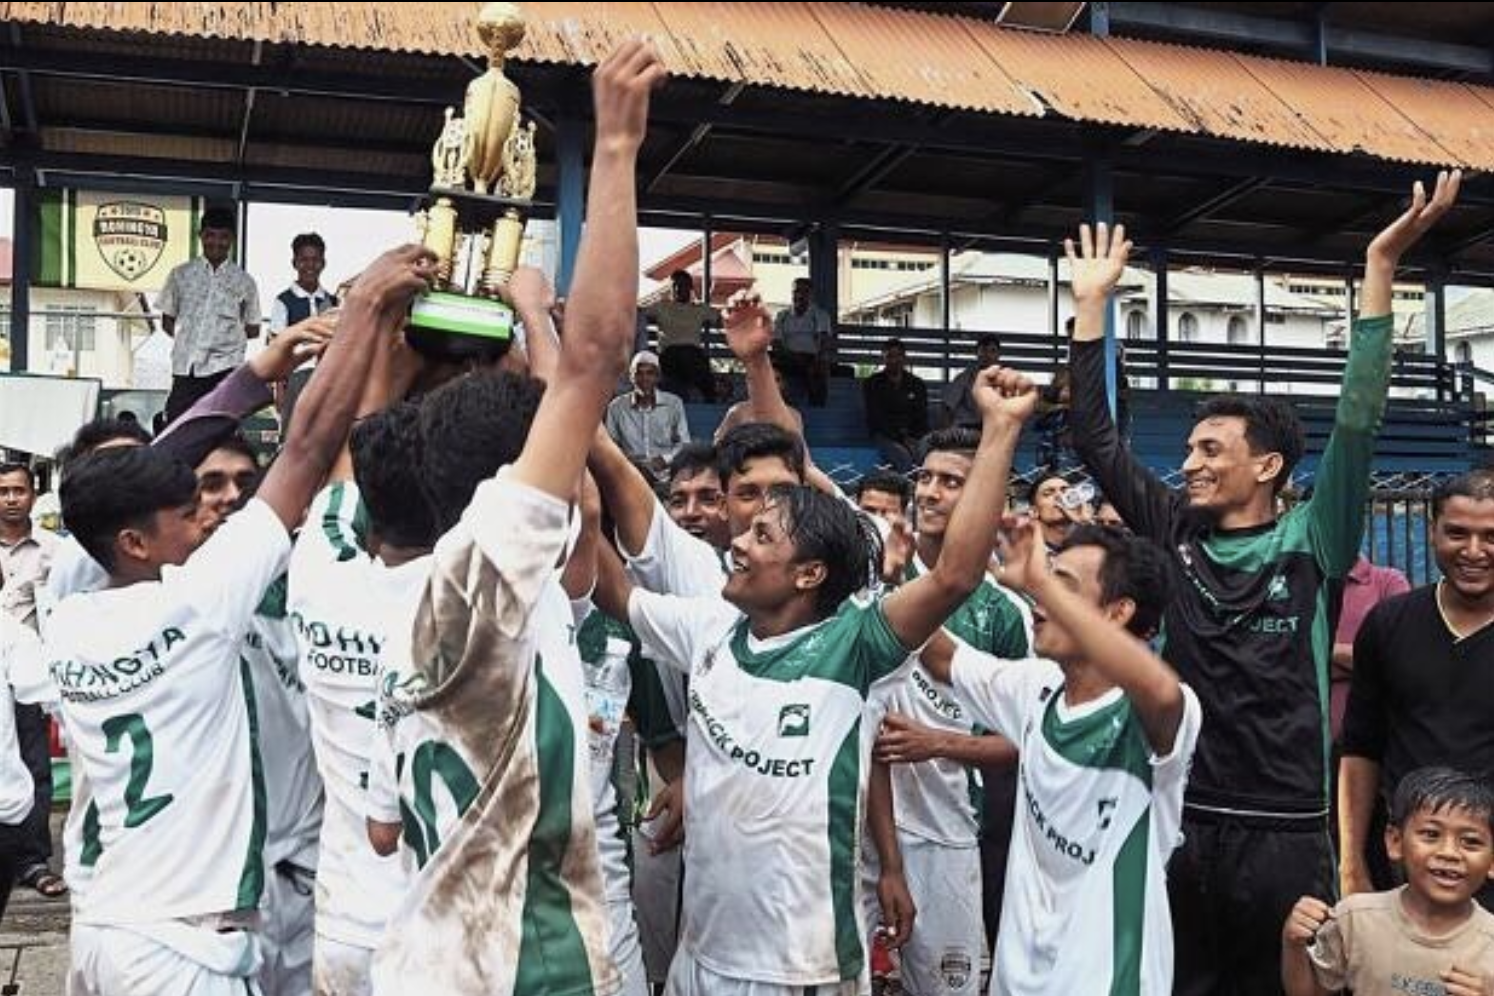 Sporting the custom made green and white uniforms made by Wooter Apparel, the Rohingya Football Club celebrates another victory competing in Malaysia's Kick Project.